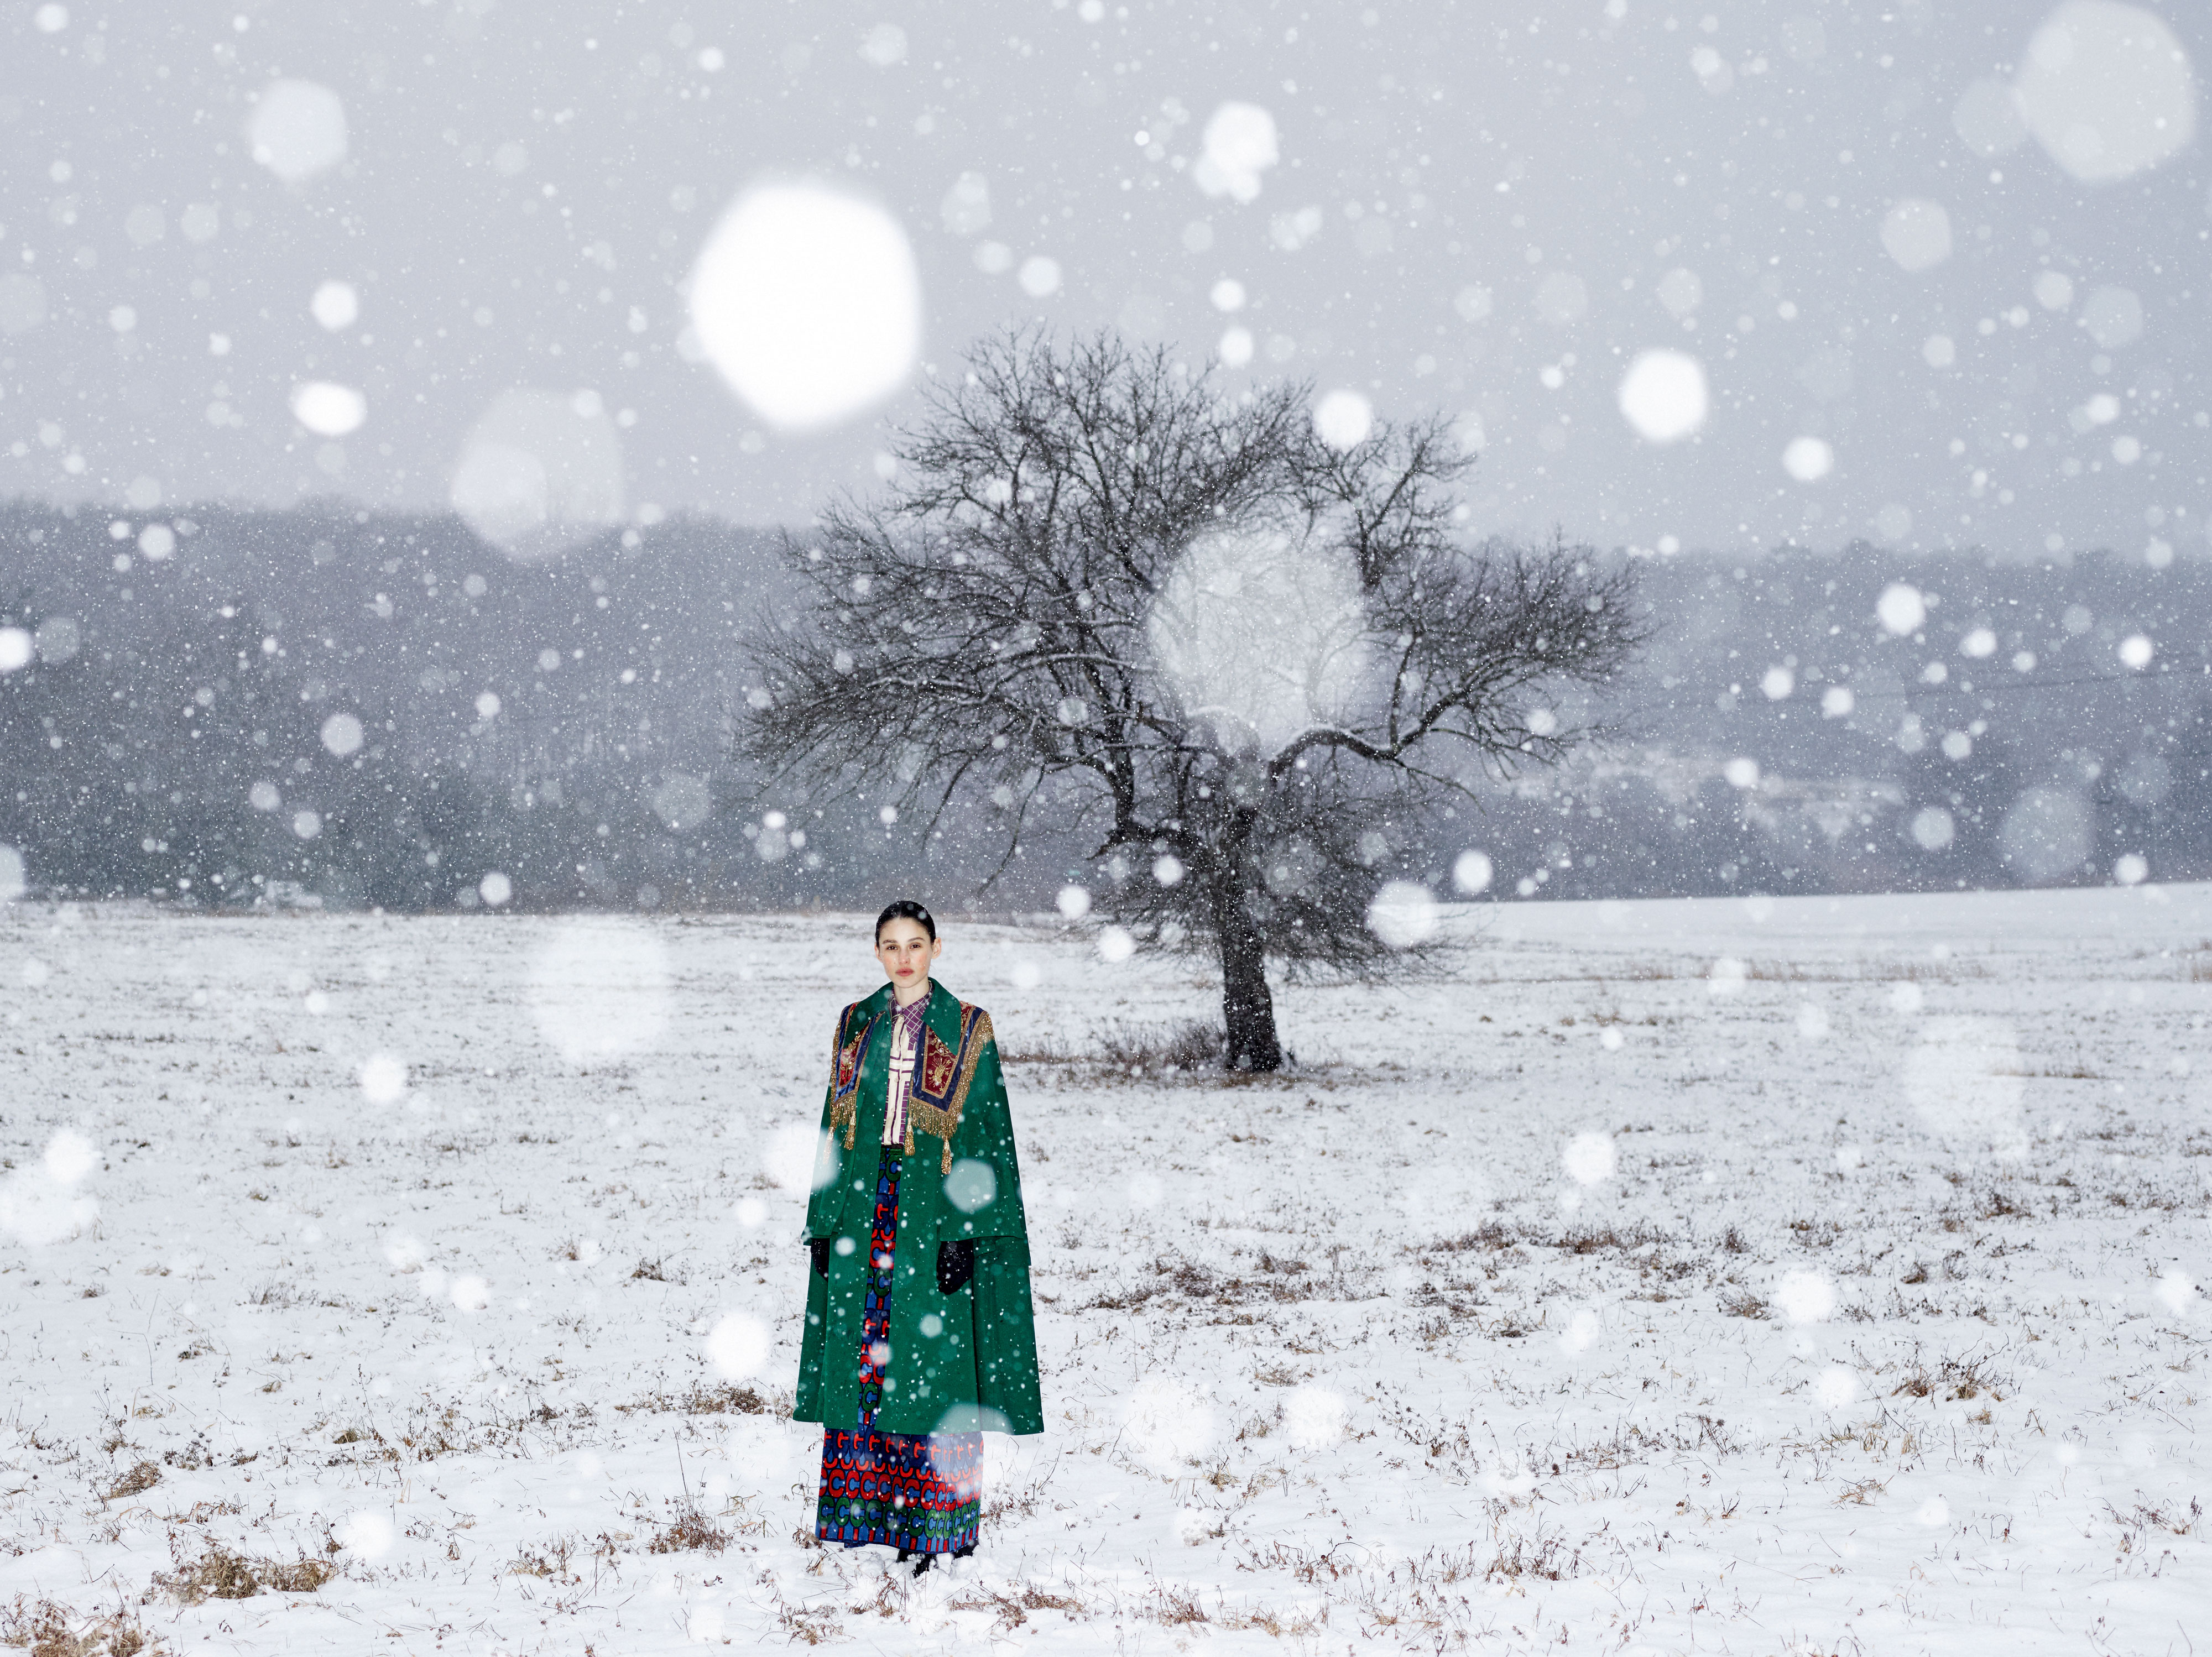 Winter snow photoshoot for Gucci